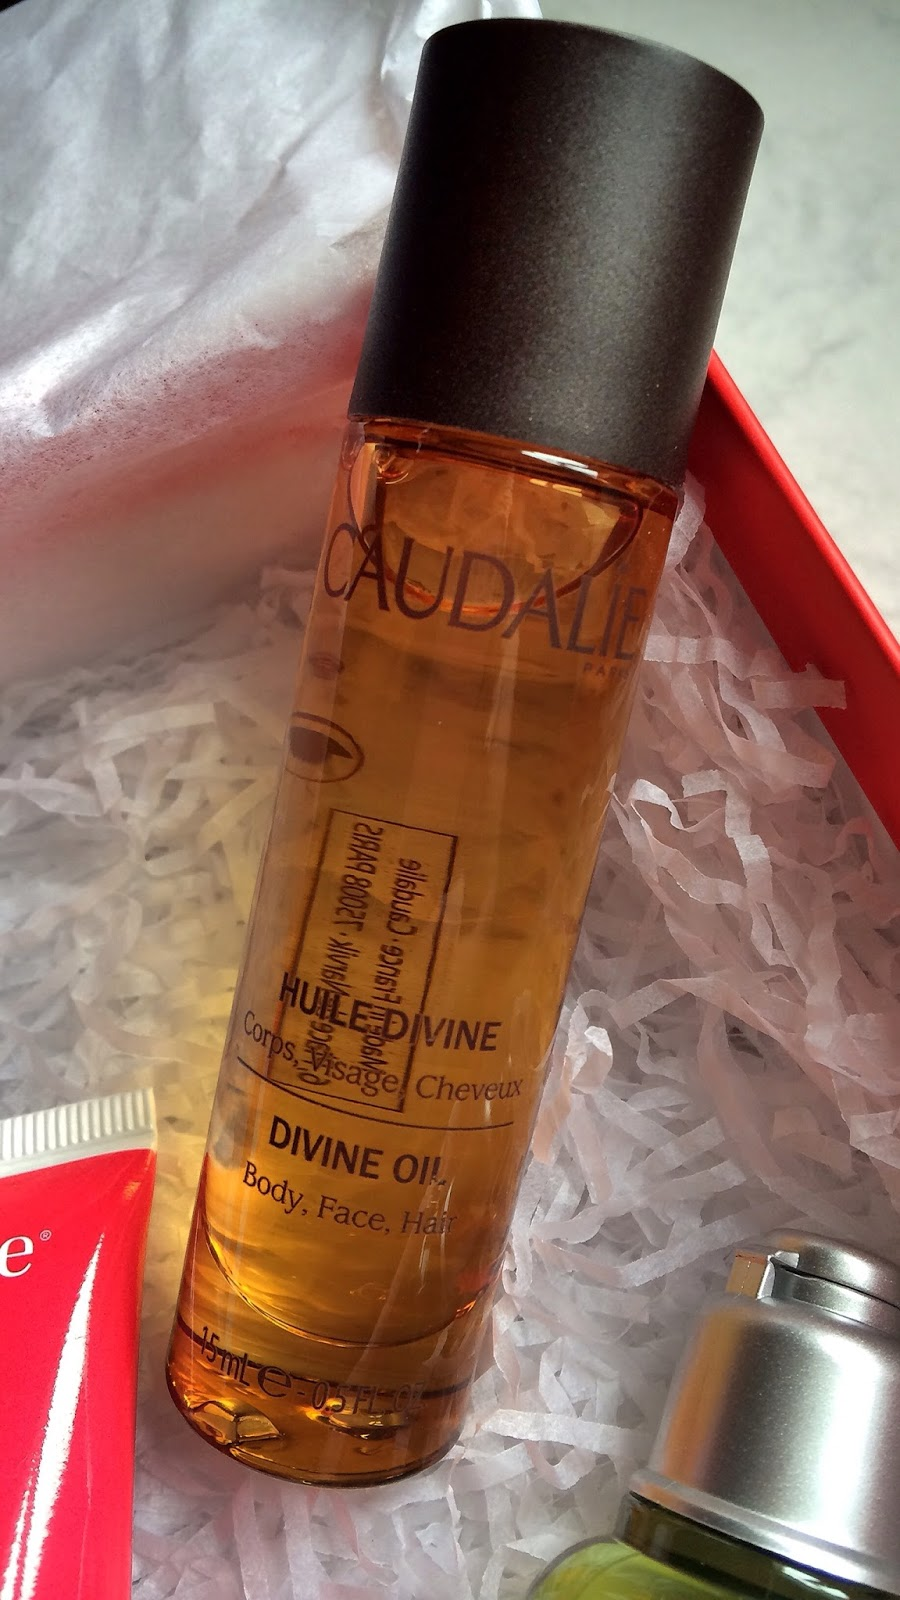 Caudalie Glamour Latest In Beauty box Summer edit